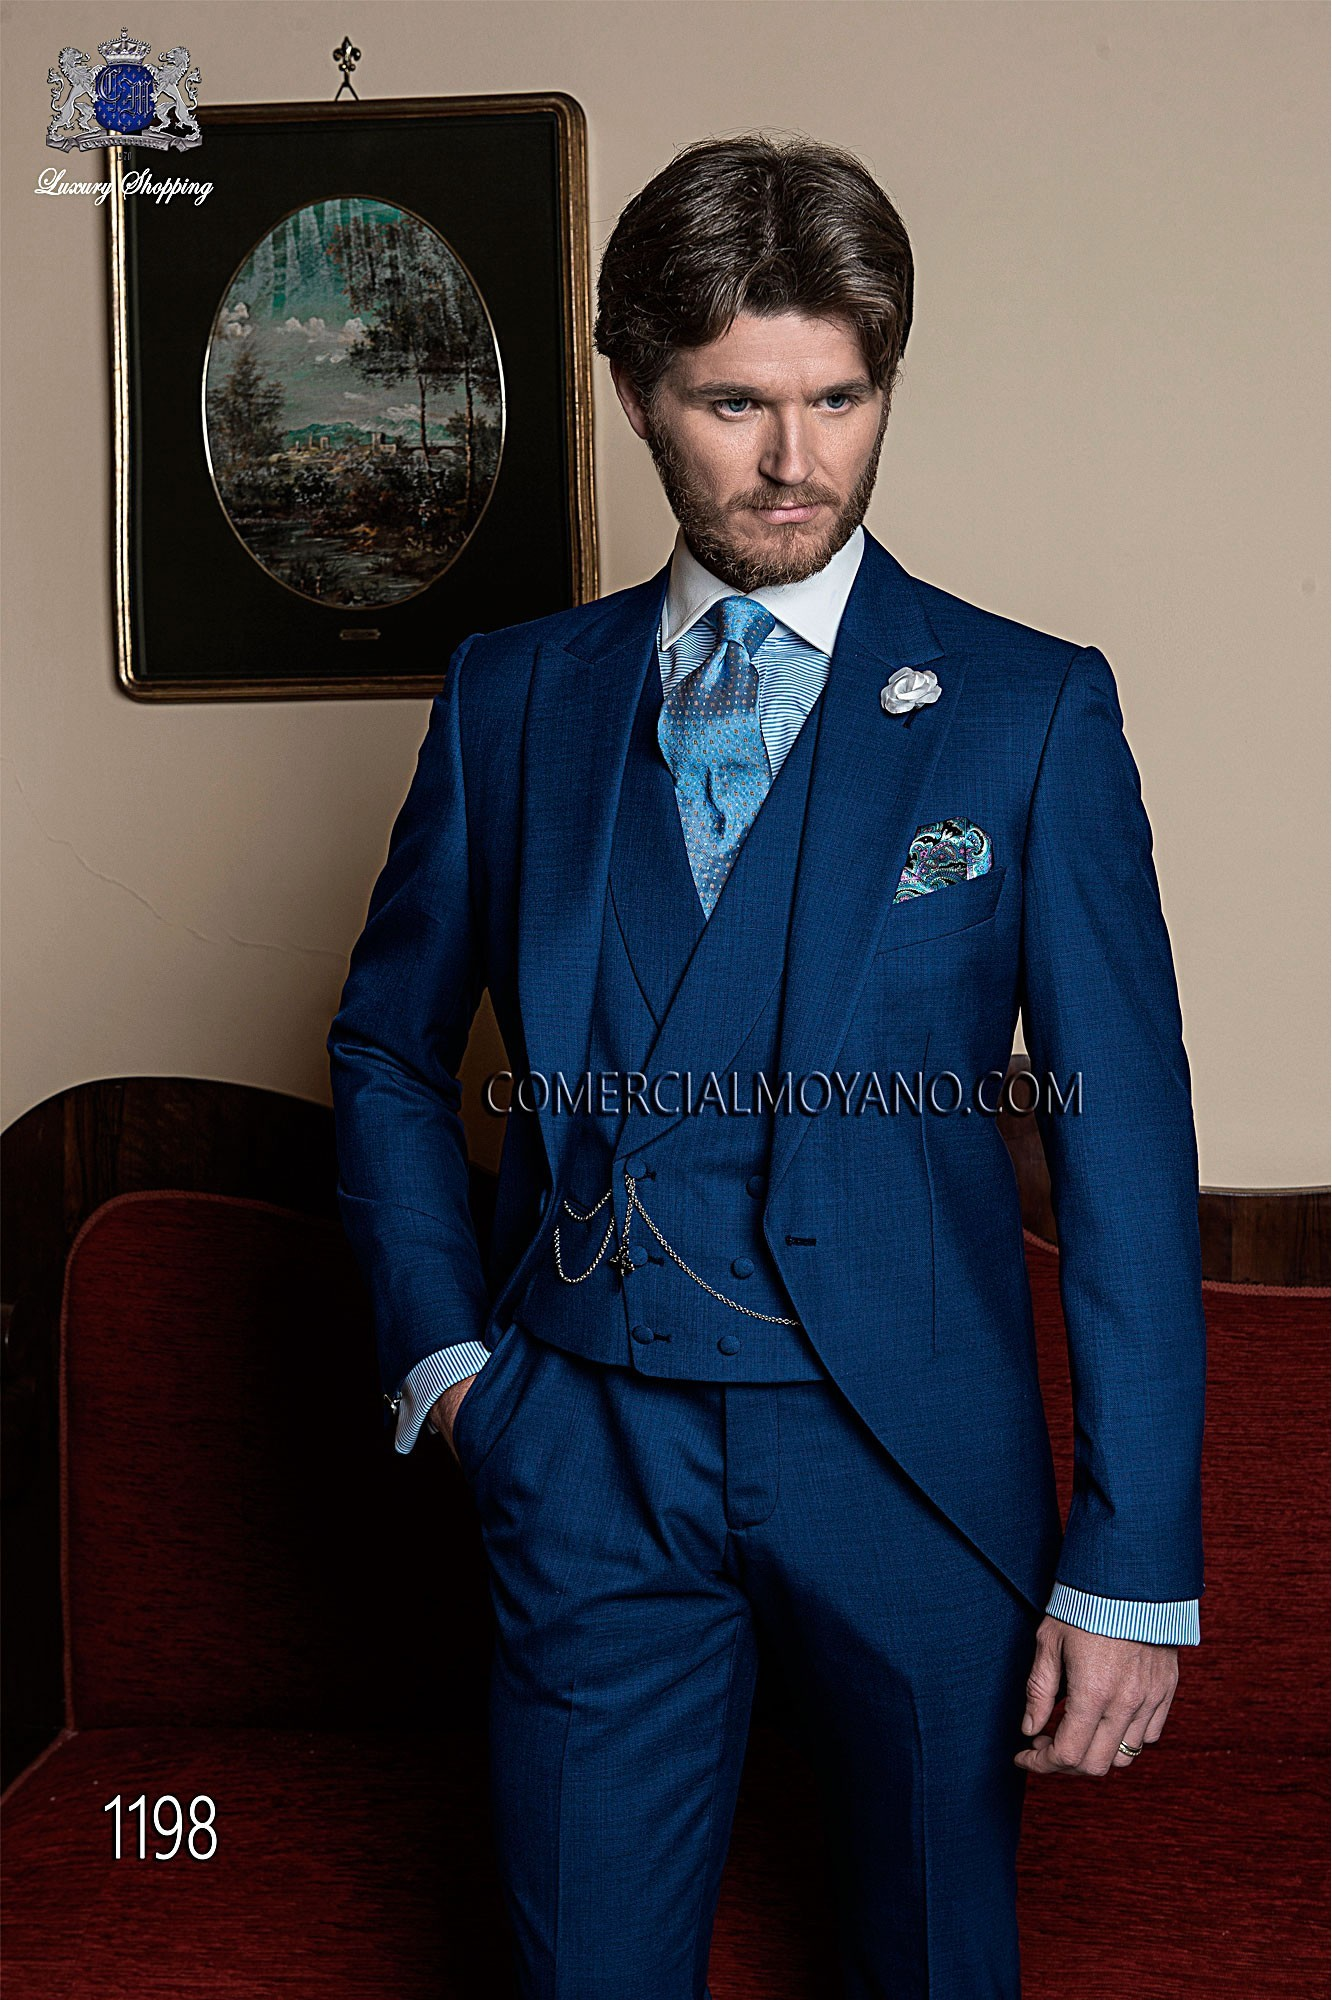 Italian bespoke wedding suit, blue short frock fil a fil, style 1198 Ottavio Nuccio Gala, 2015 Gentleman collection.